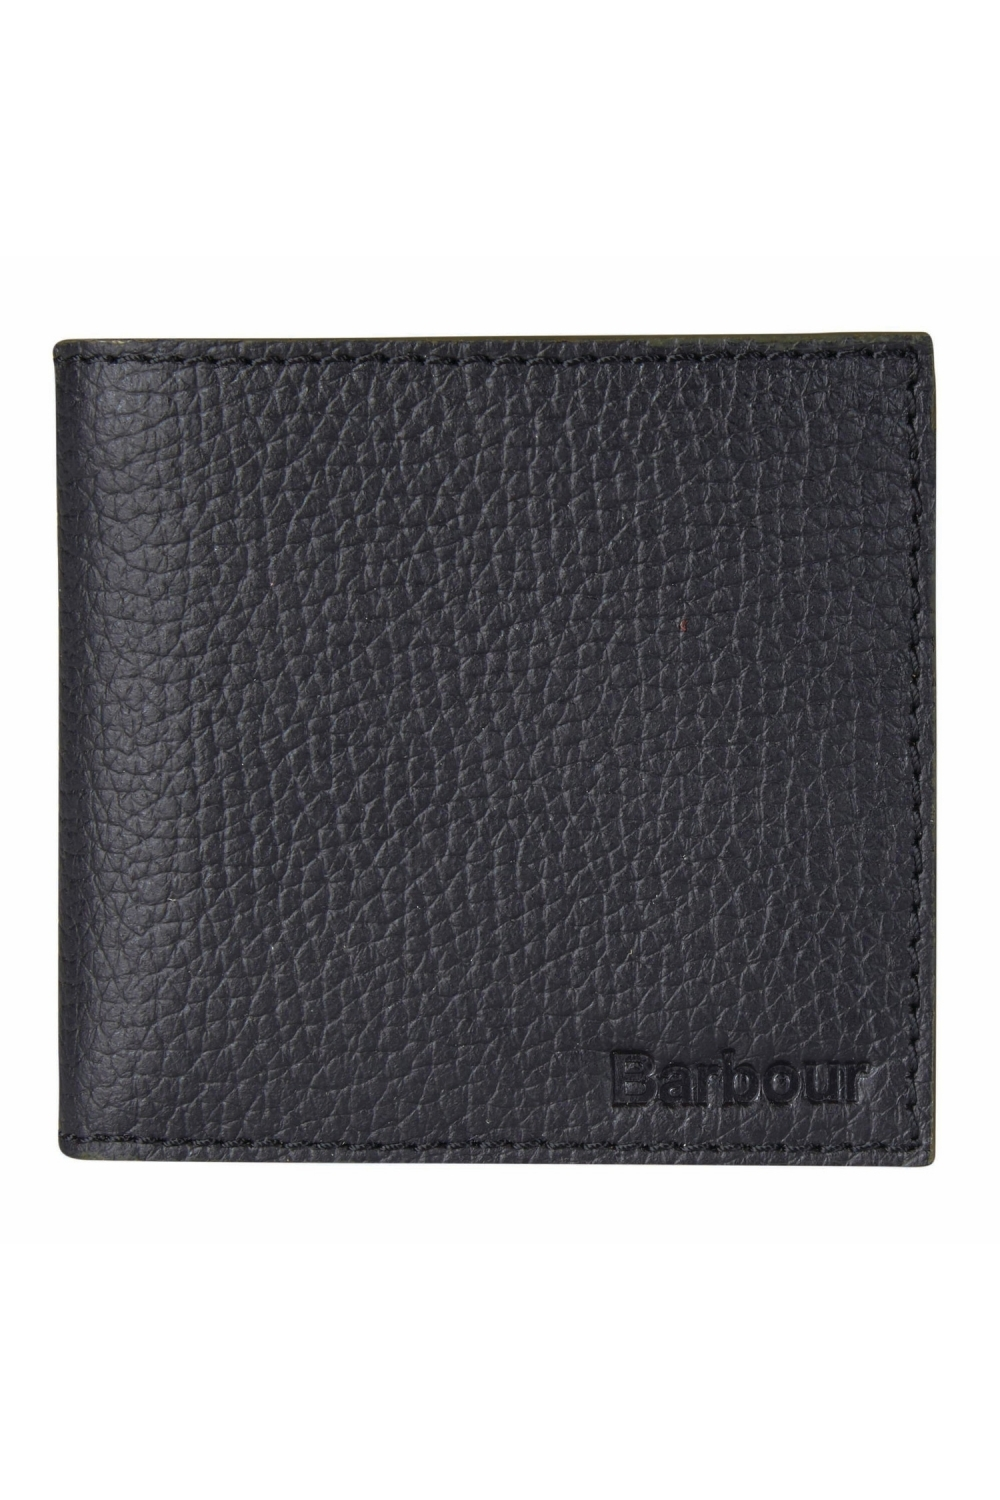 2ba55026 Barbour Billfold Leather Wallet - Accessories from Michael Stewart ...